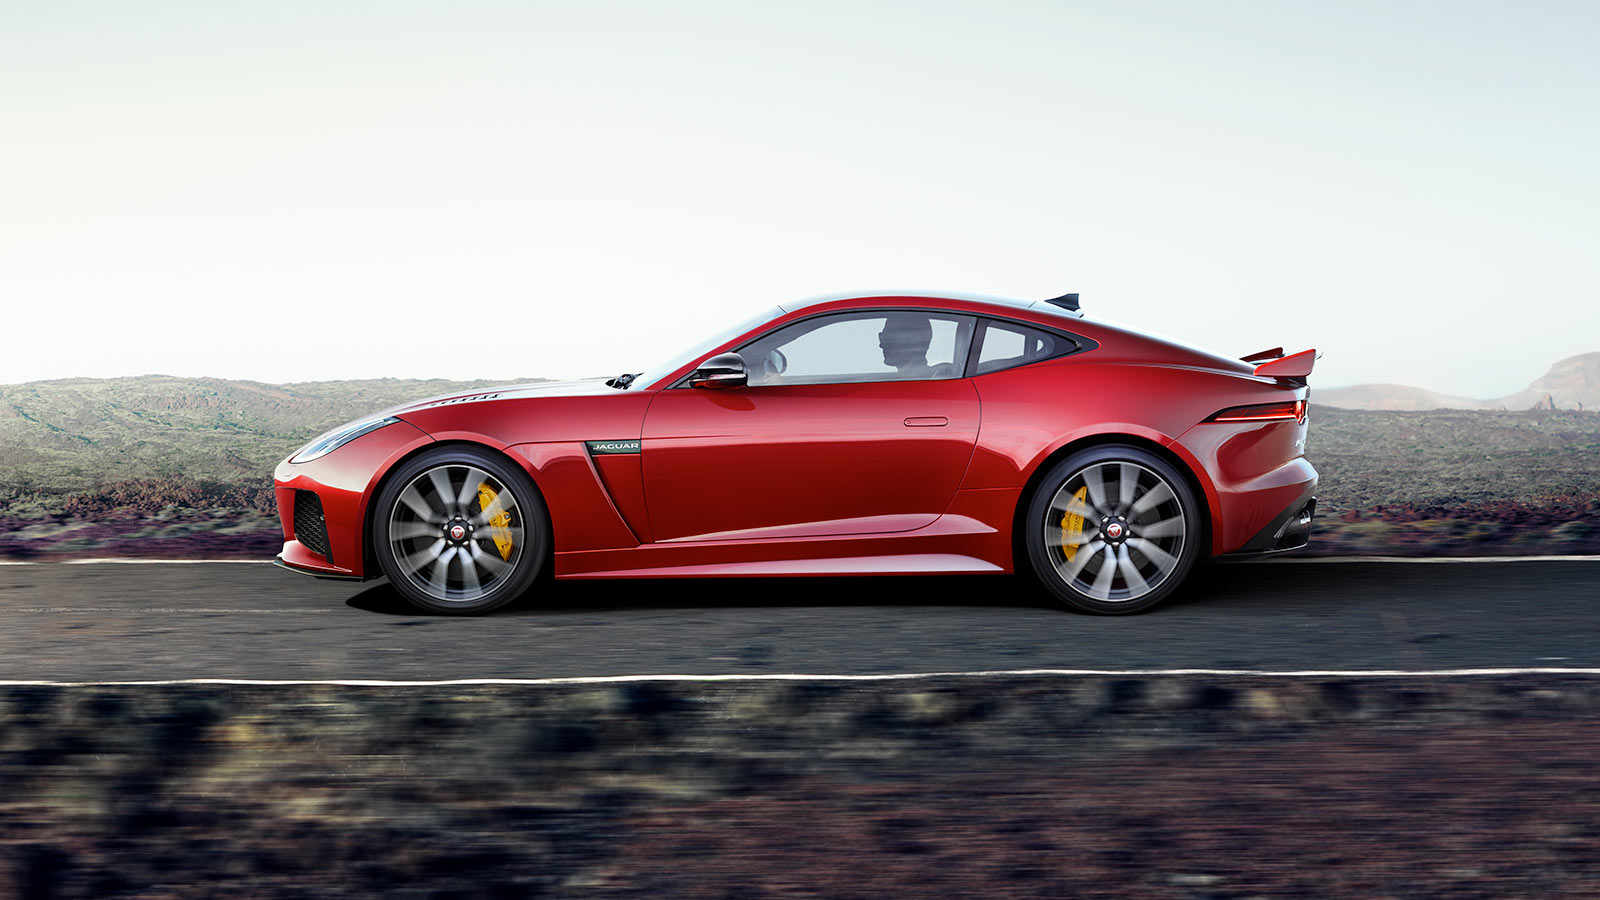 Jaguar F-TYPE 3.0 (380) S/C V6 Chequered Flag AWD SPECIAL EDITIONS image 9